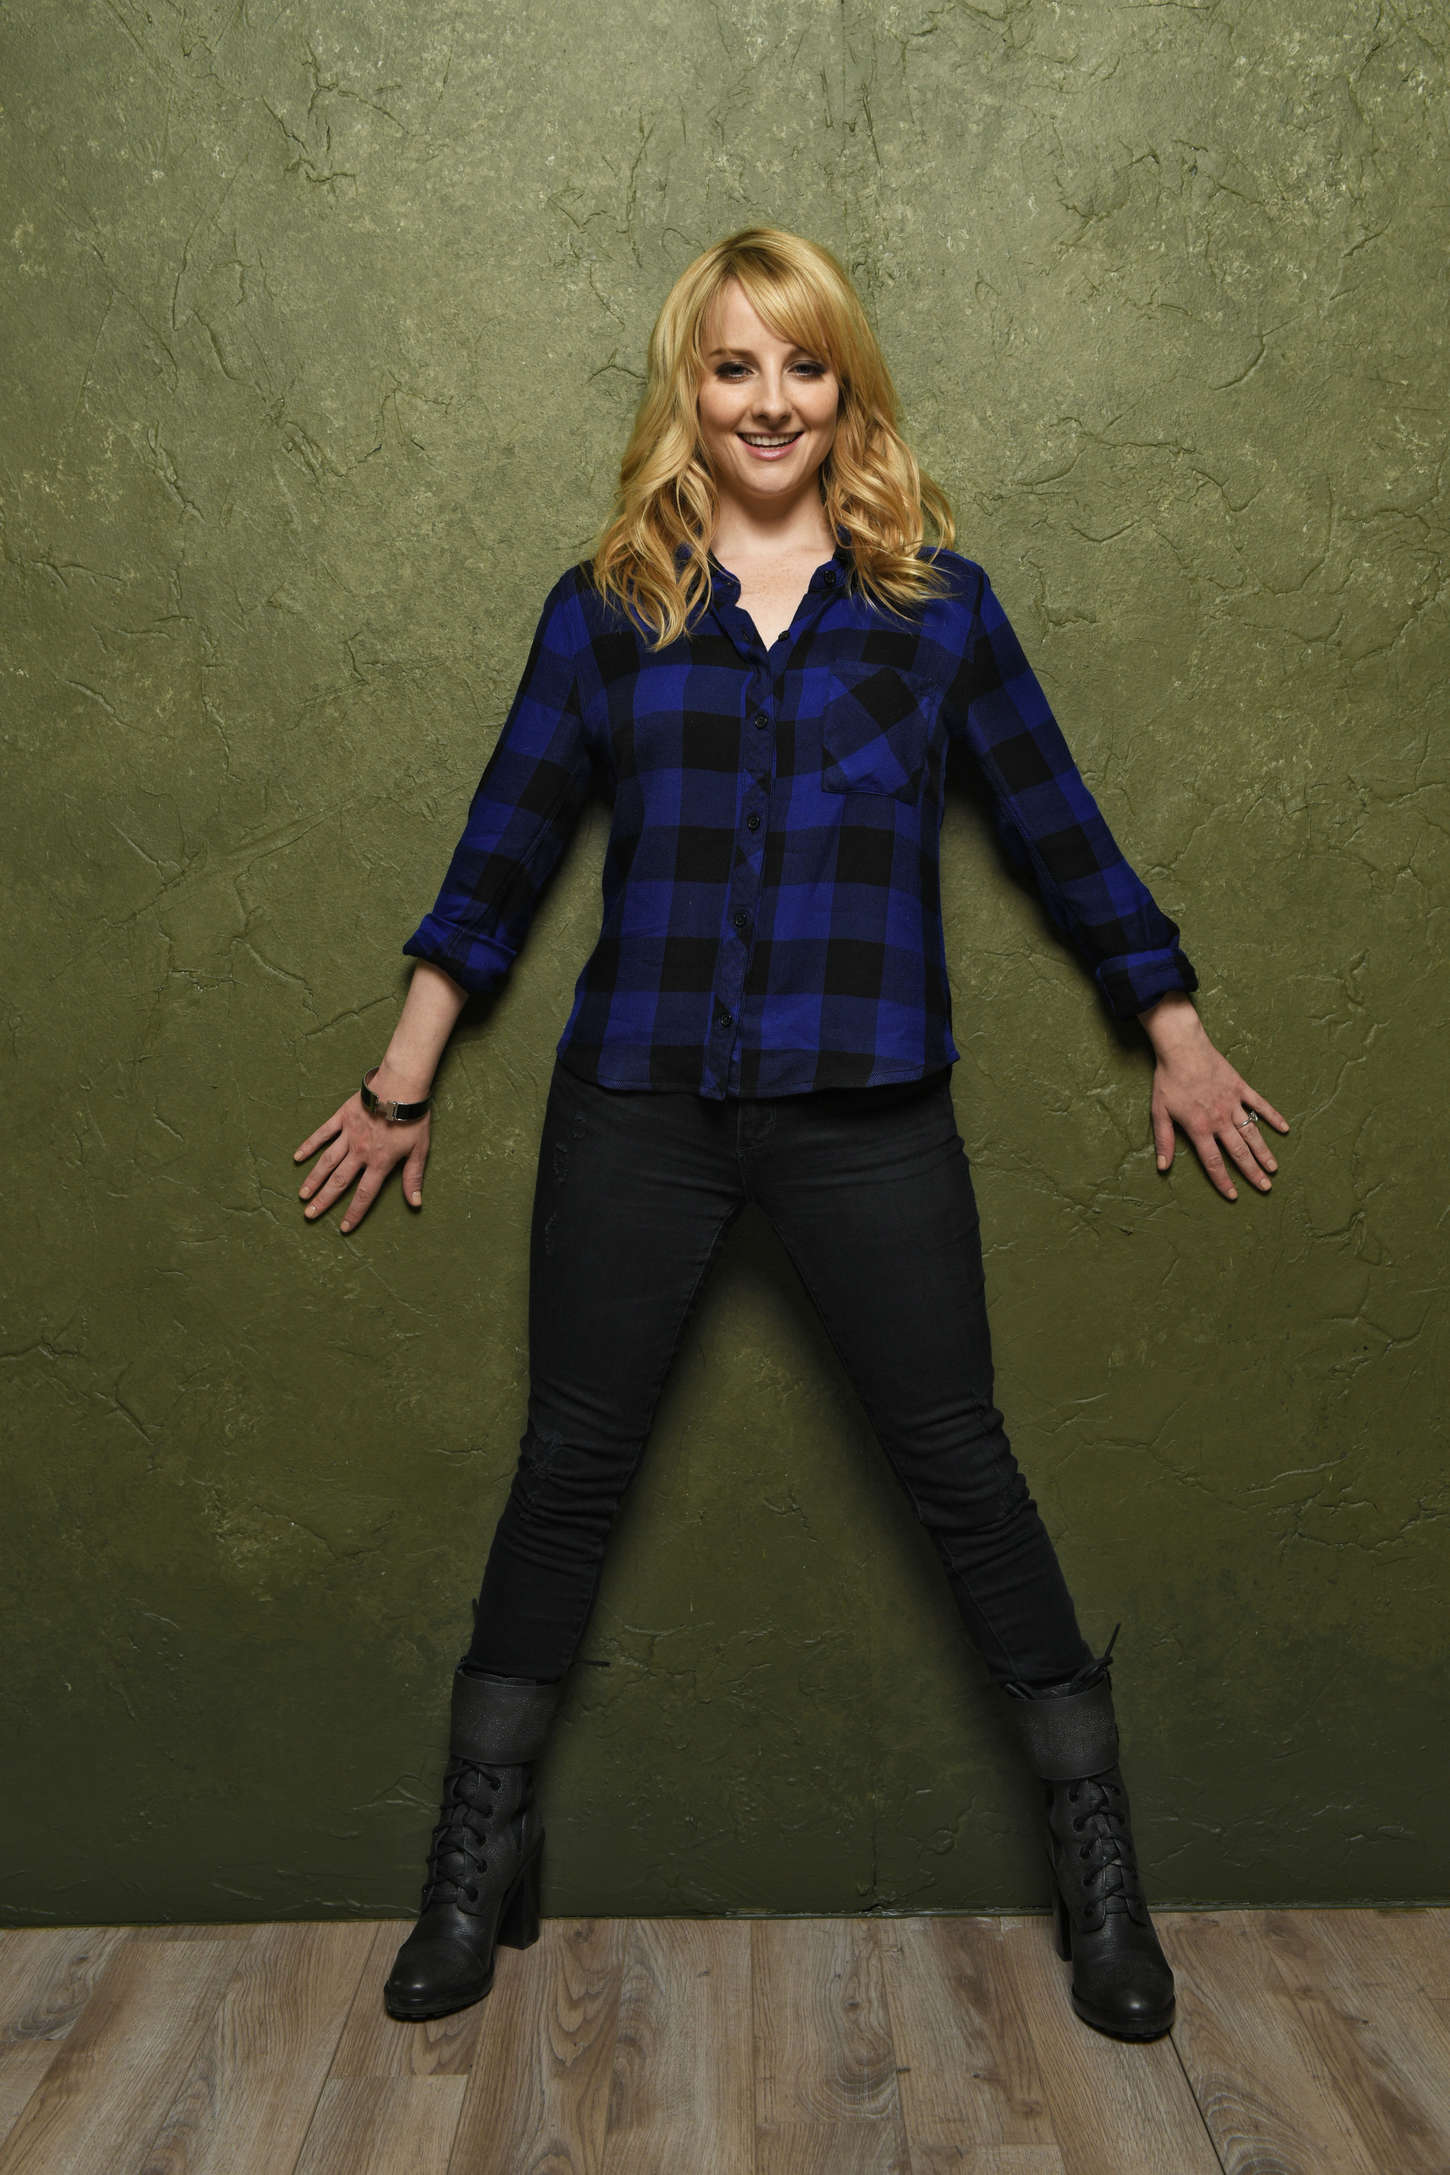 Melissa Rauch The Bronze Portraits Sundance Film Festival in Park City